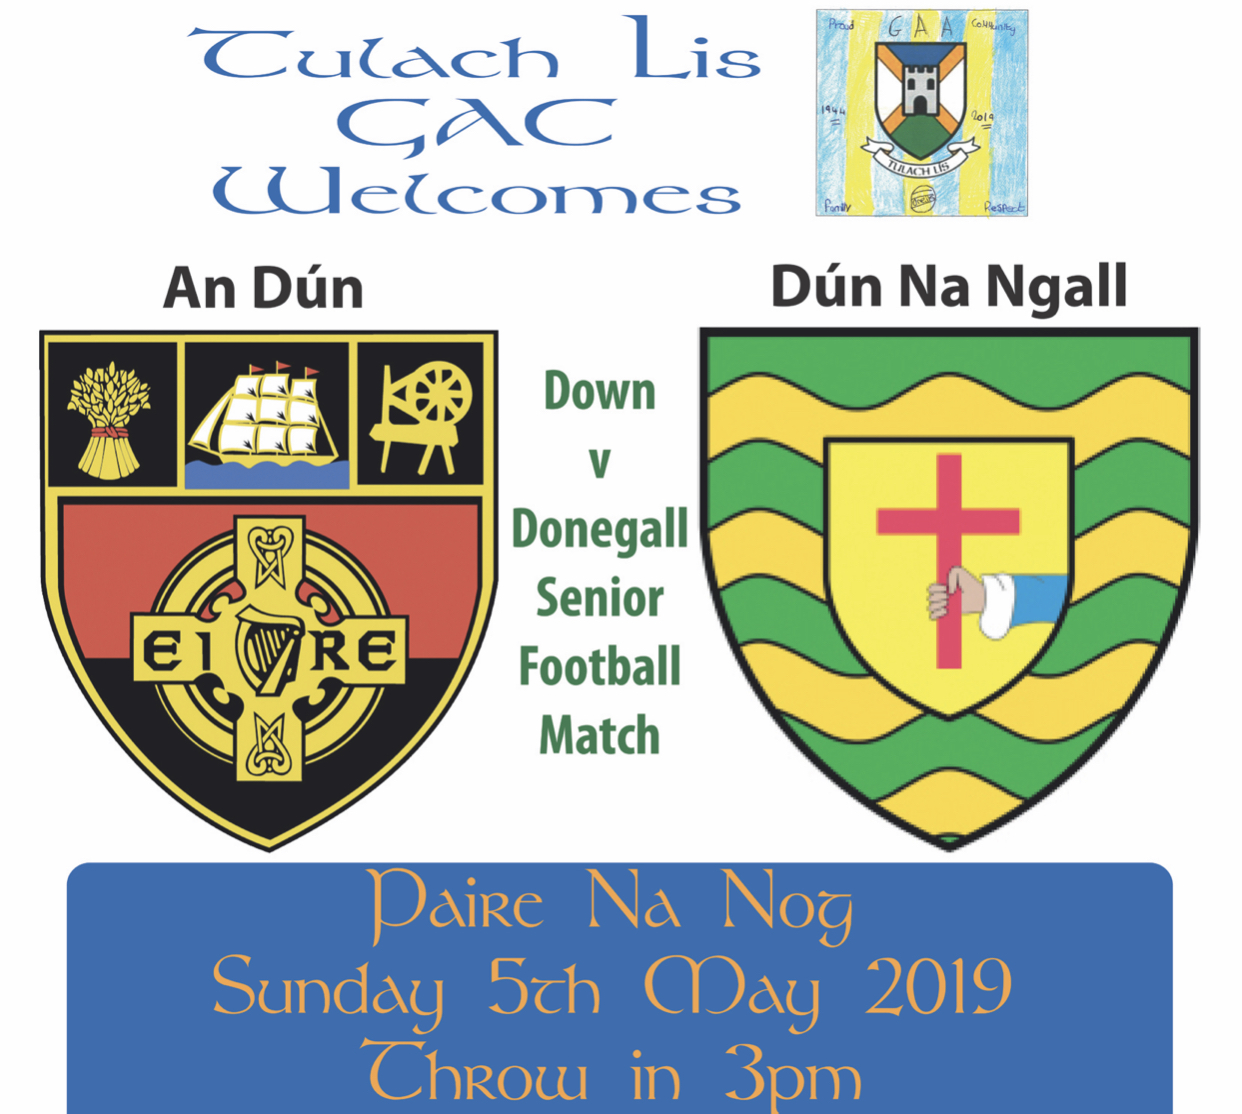 Down v Donegal at Tullylish